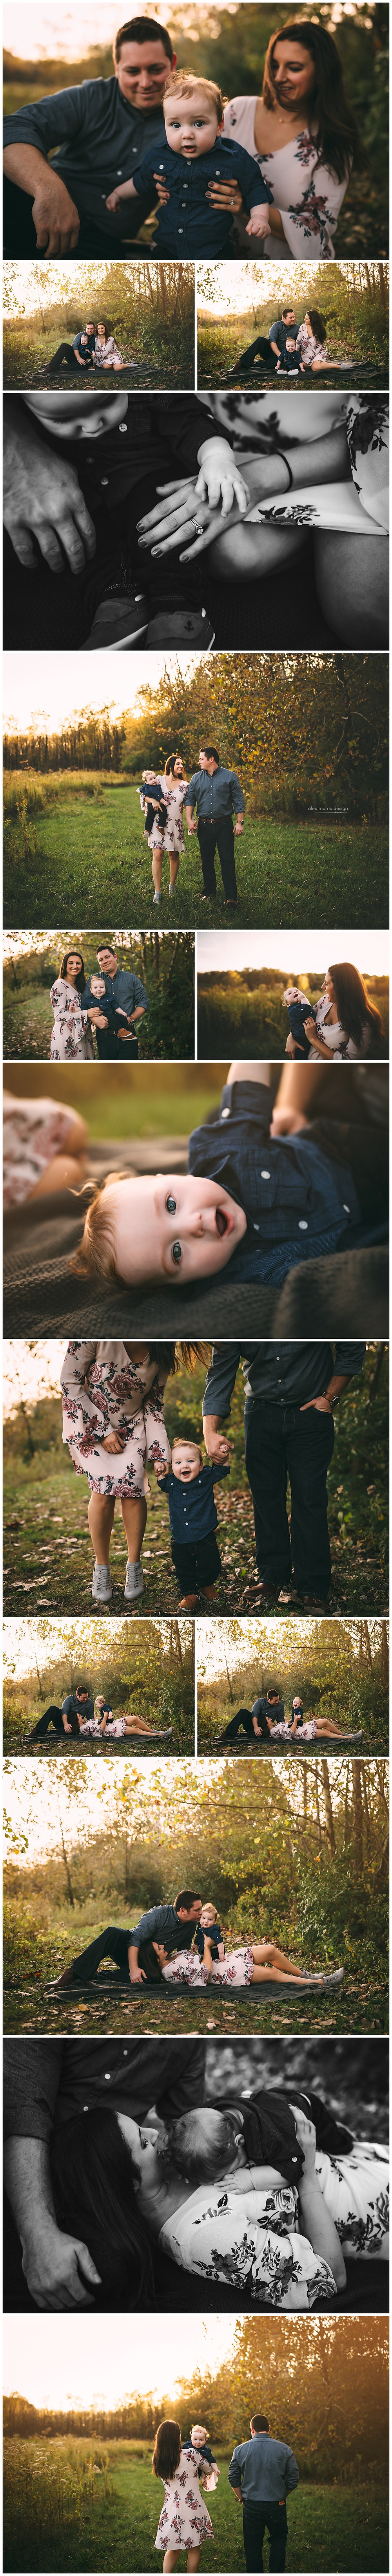 Indianapolis Family Photographer | Alex Morris Design